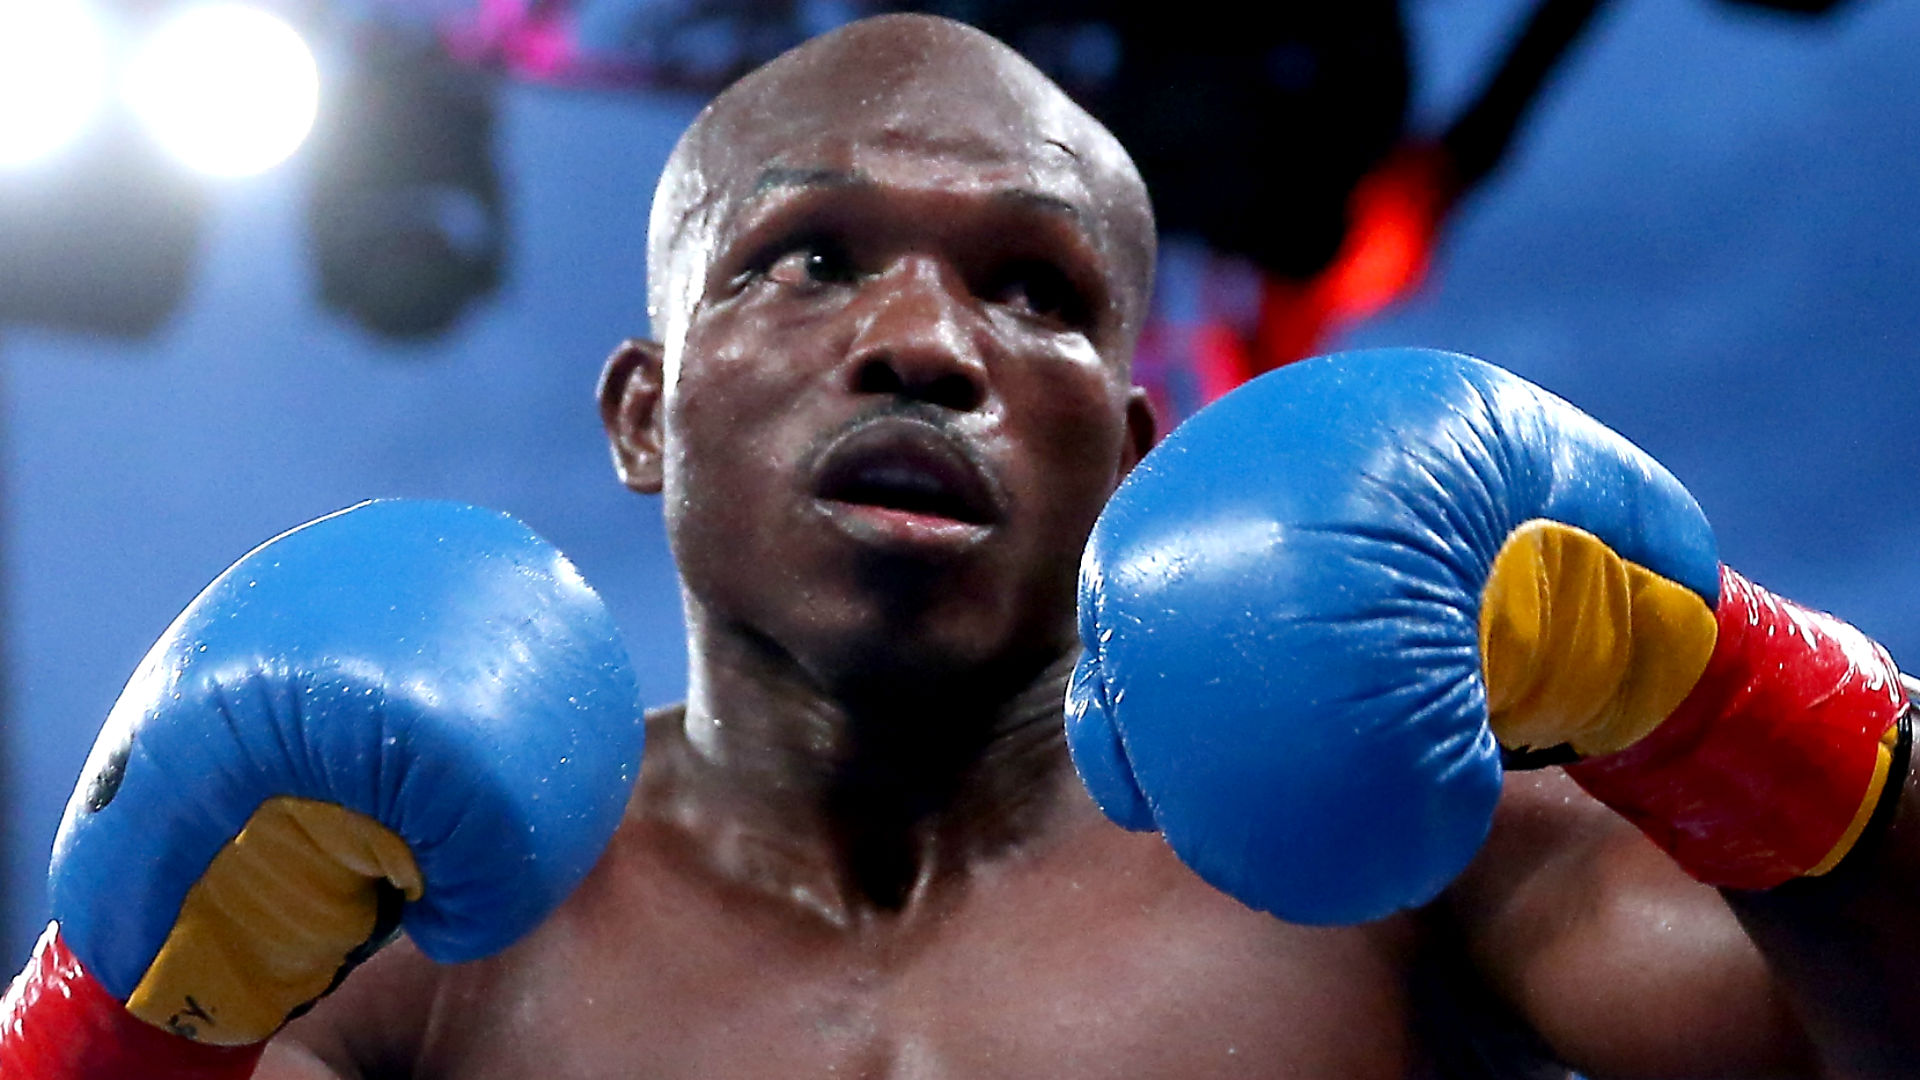 Timothy Bradley reveals harrowing encounter with police during ESPN boxing broadcast 1